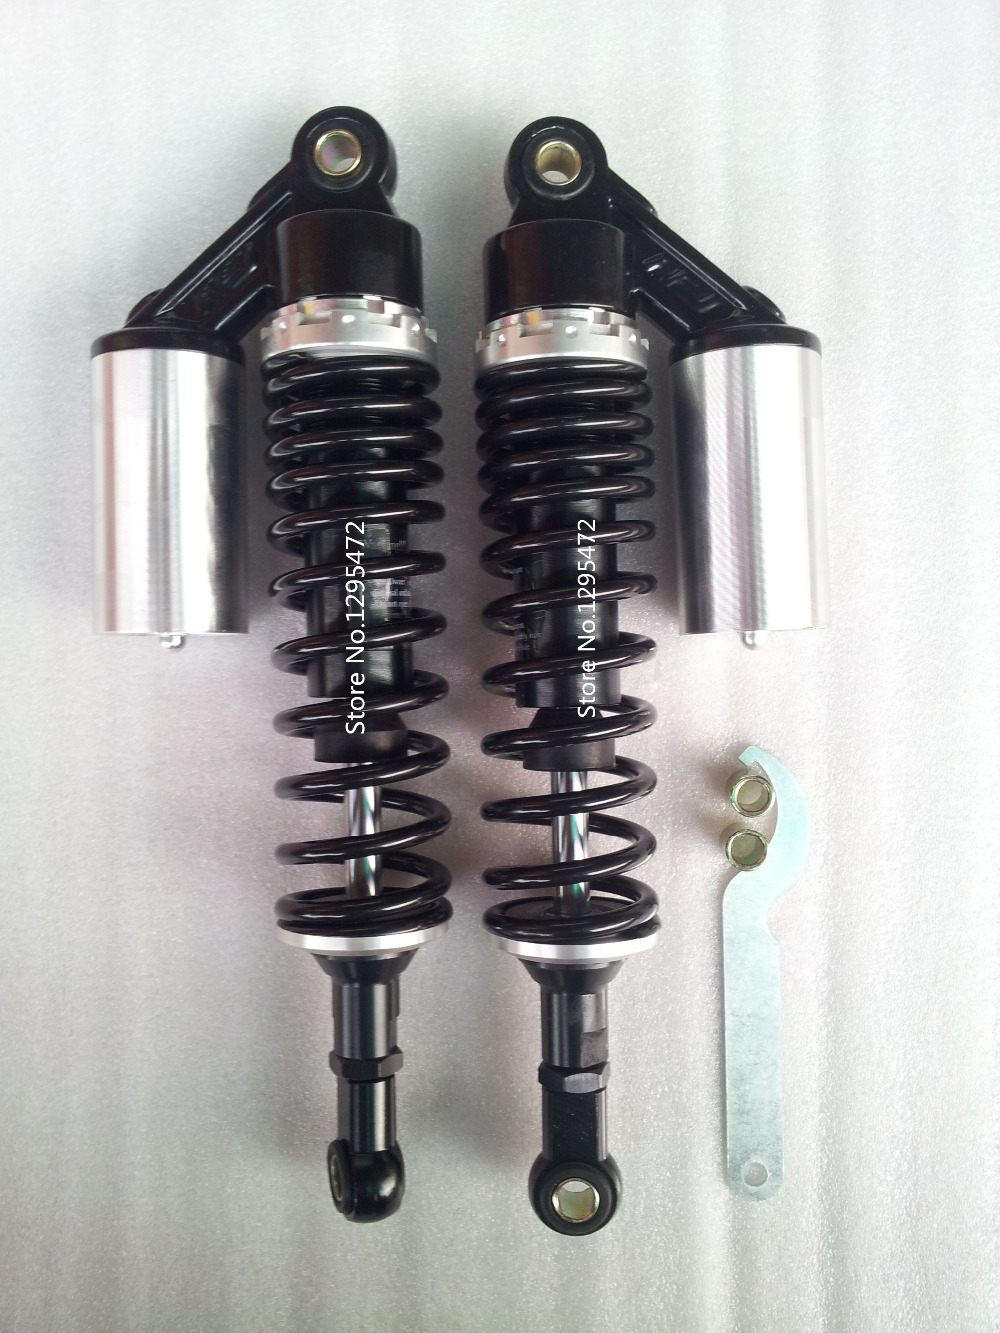 "13.5"" 340mm 8mm Spring Air Shock Absorber For Gn400 Vmax Cb400 Quad Atv Black+silver More Discounts Surprises"